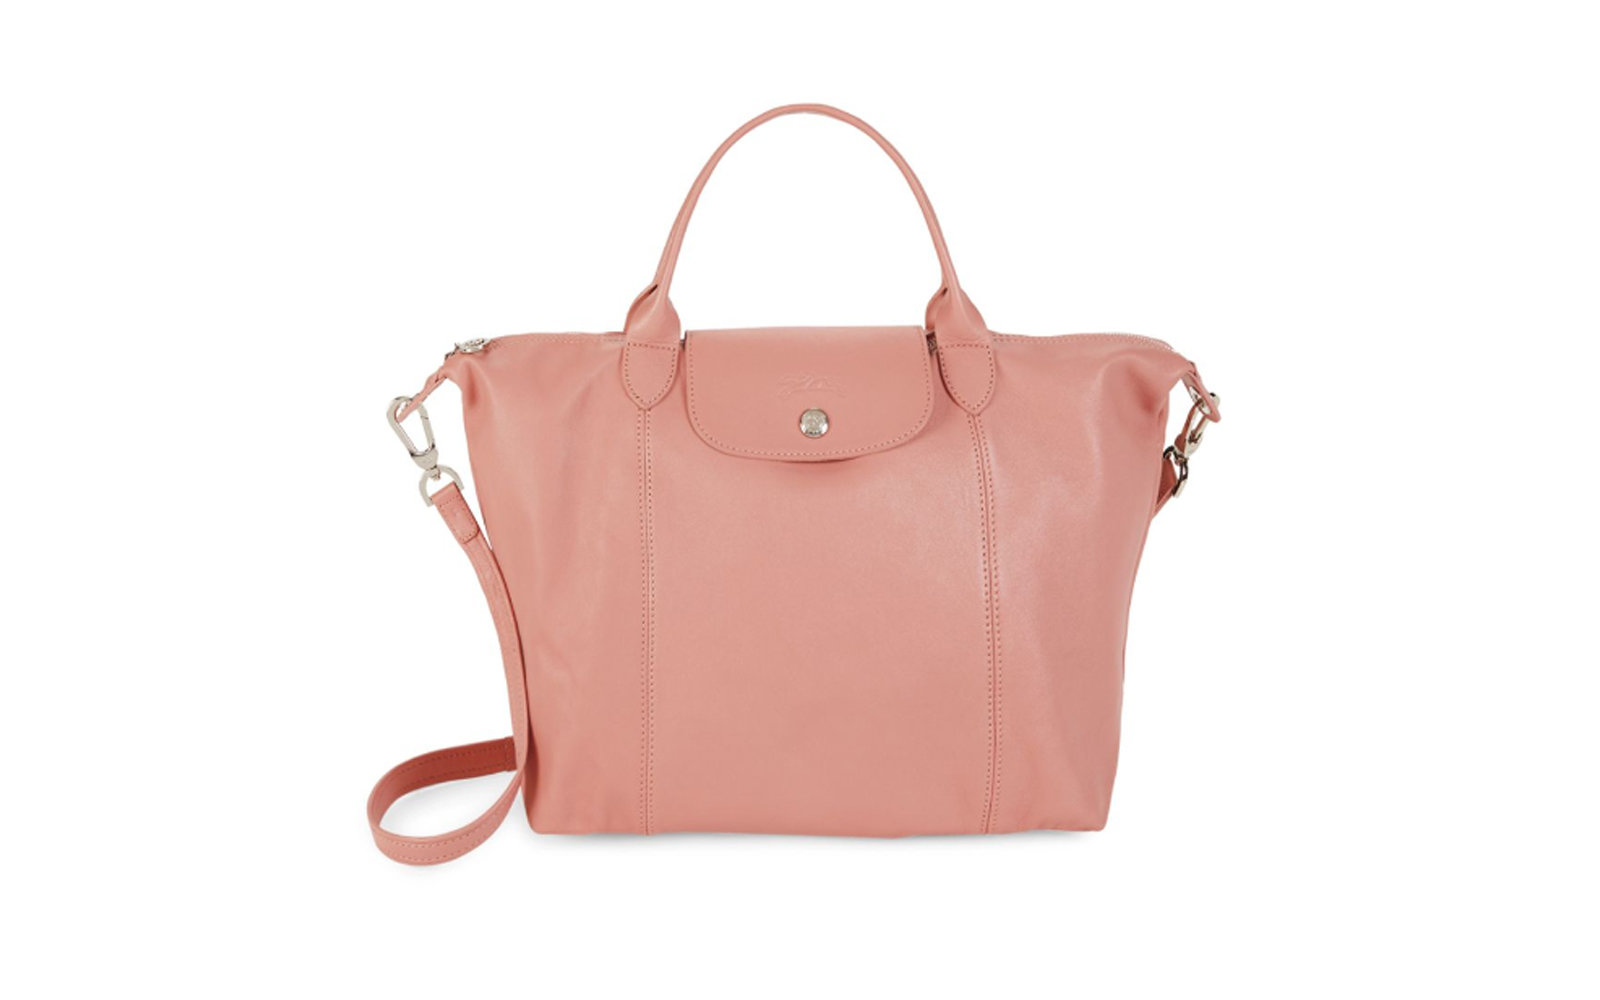 Longchamp Le Pliage Leather Tote in Blush